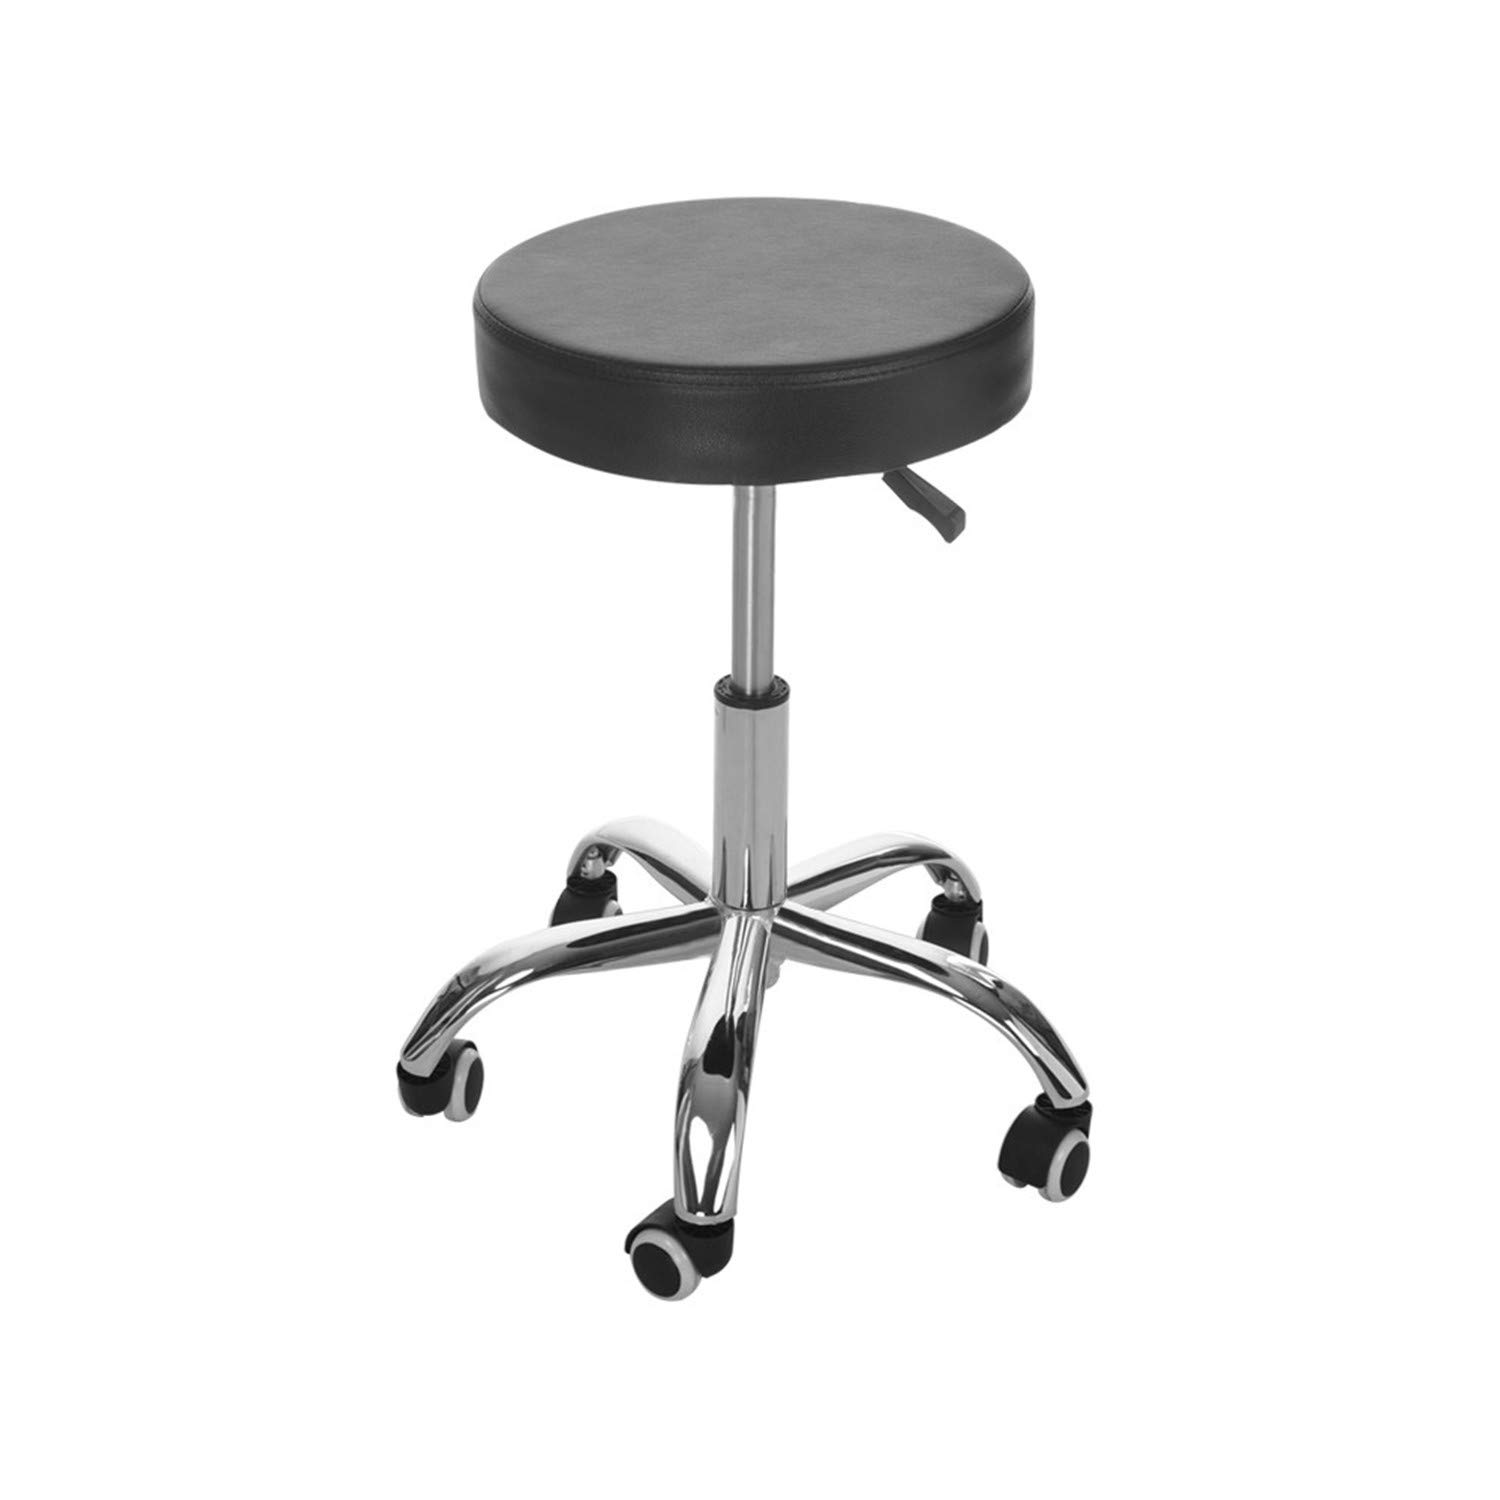 Salon Stool Office Chair, Round Rolling Stool PU Leather Height Adjustable Swivel Drafting Work SPA Medical Stools Chair with Wheels Black